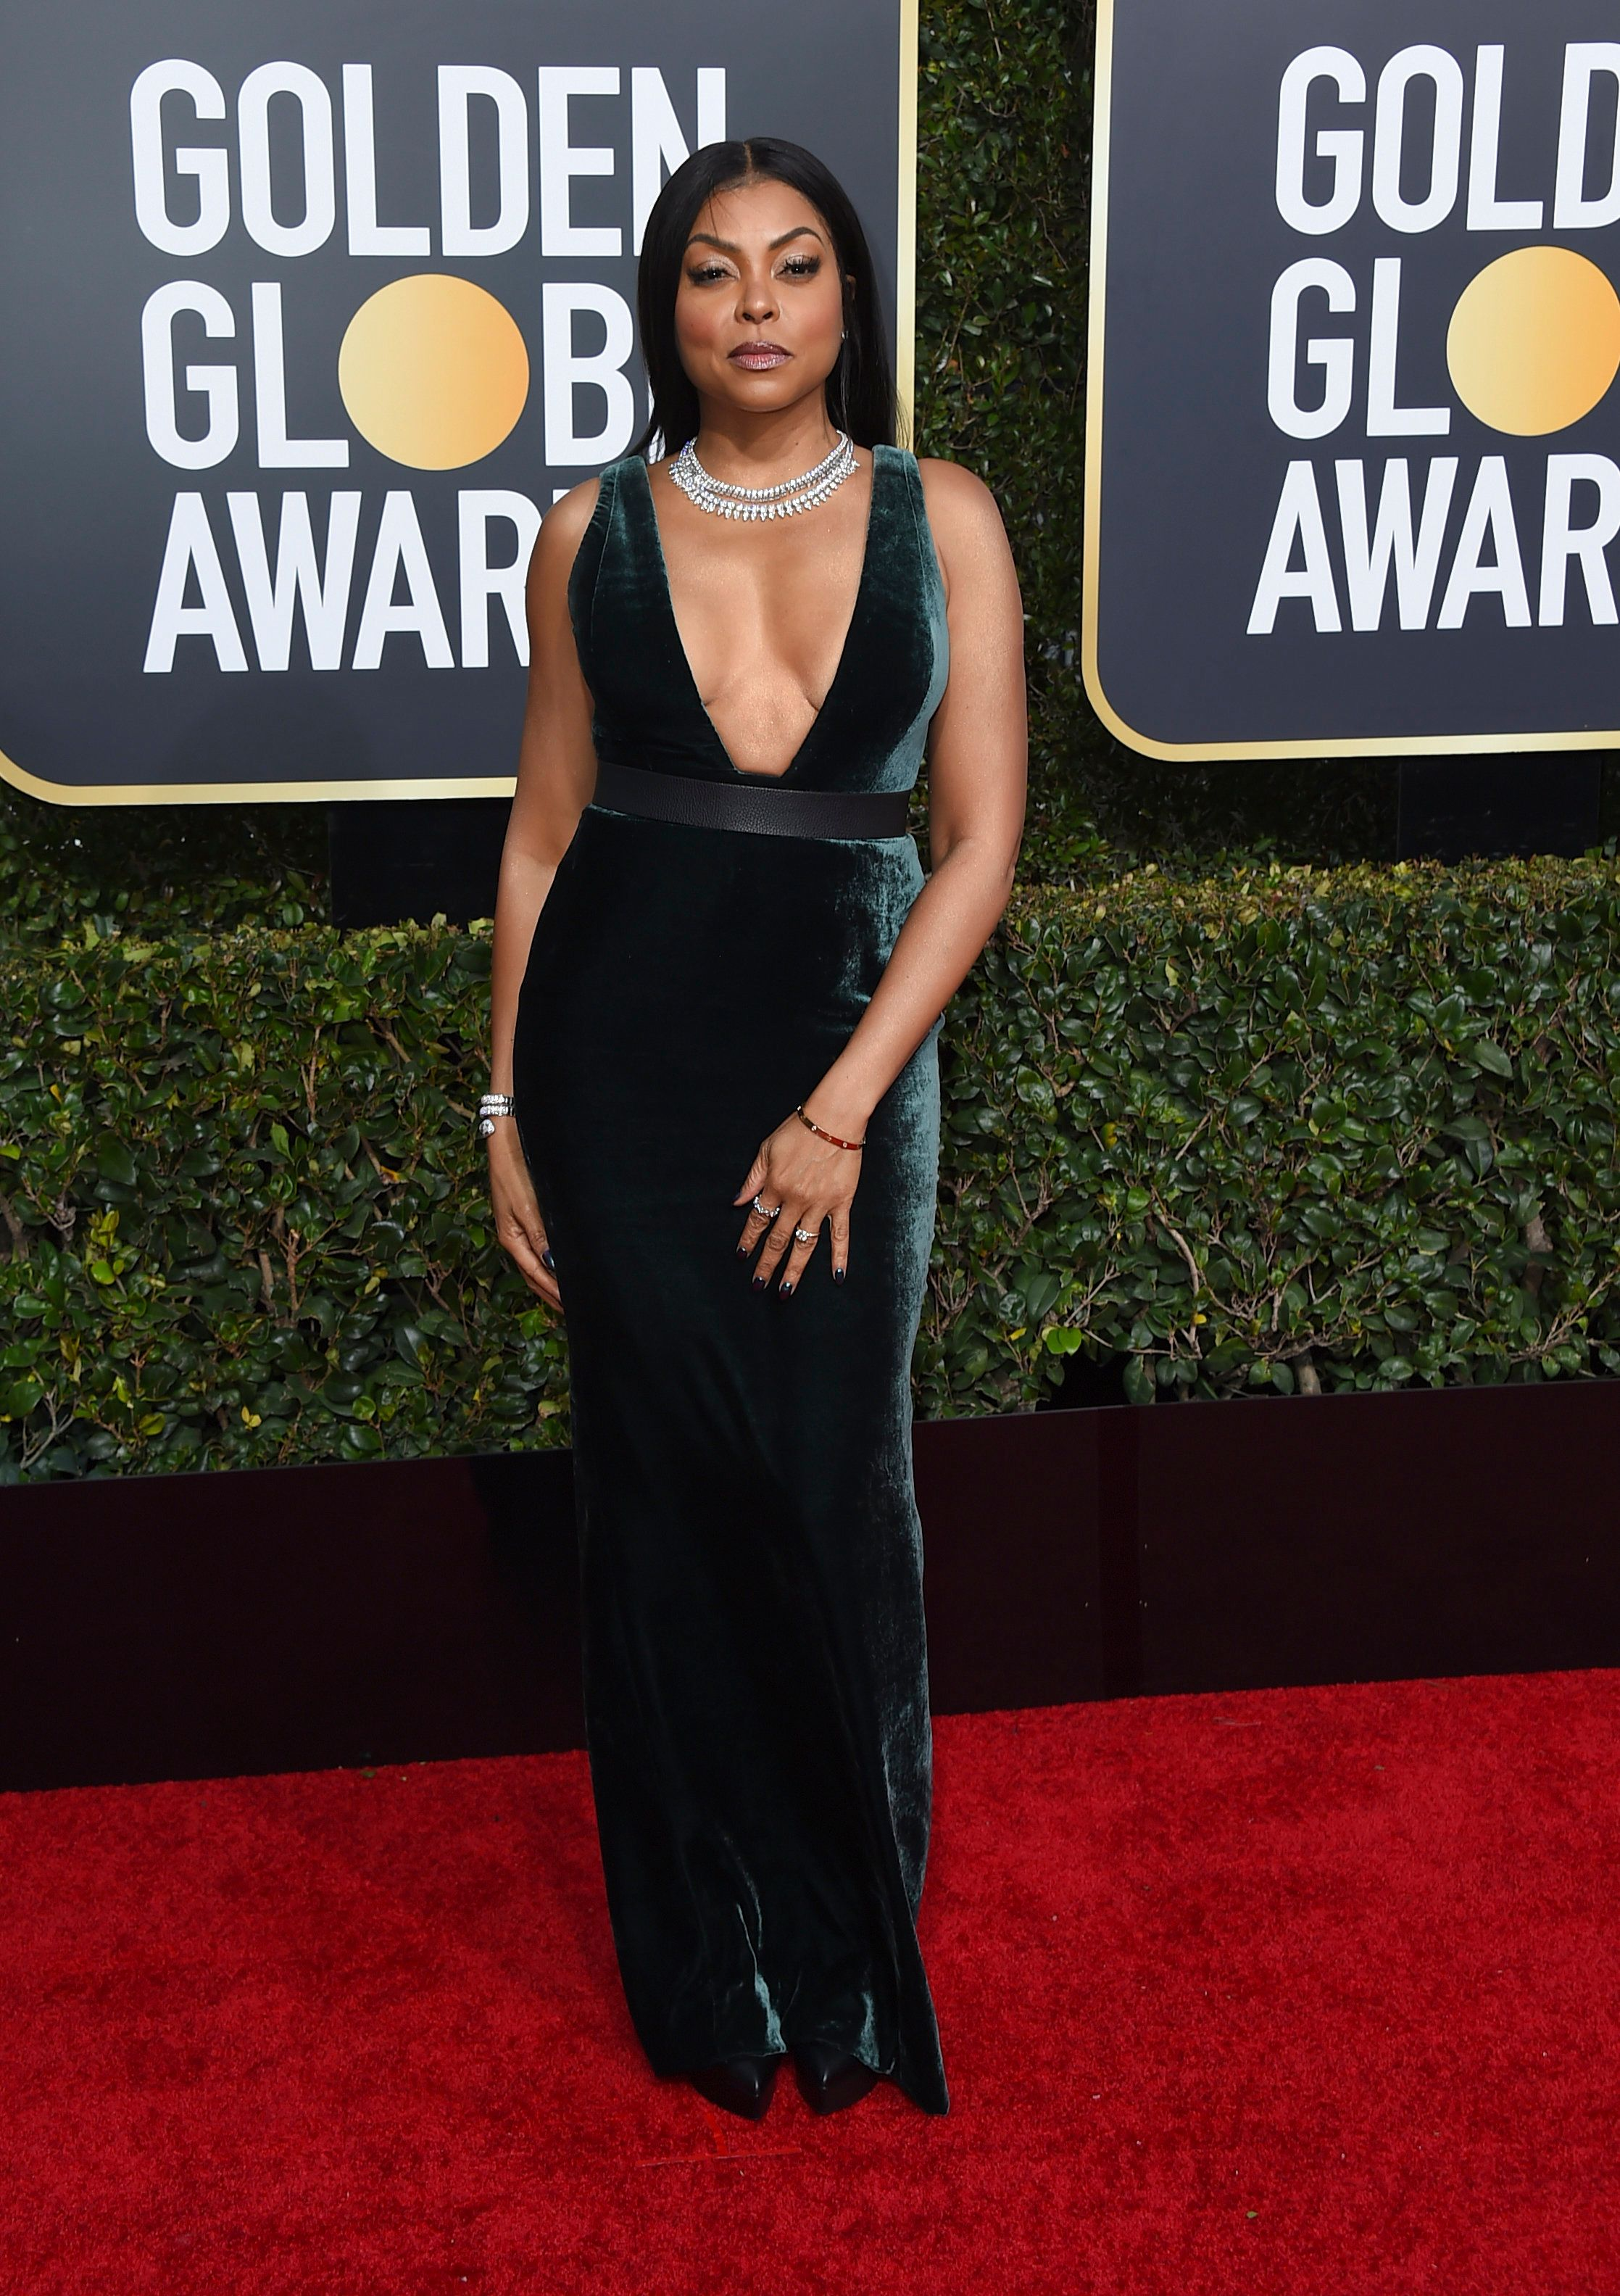 Taraji P. Henson arrives at the 76th annual Golden Globe Awards at the Beverly Hilton Hotel on Sunday, Jan. 6, 2019, in Beverly Hills, Calif. (Photo by Jordan Strauss/Invision/AP)